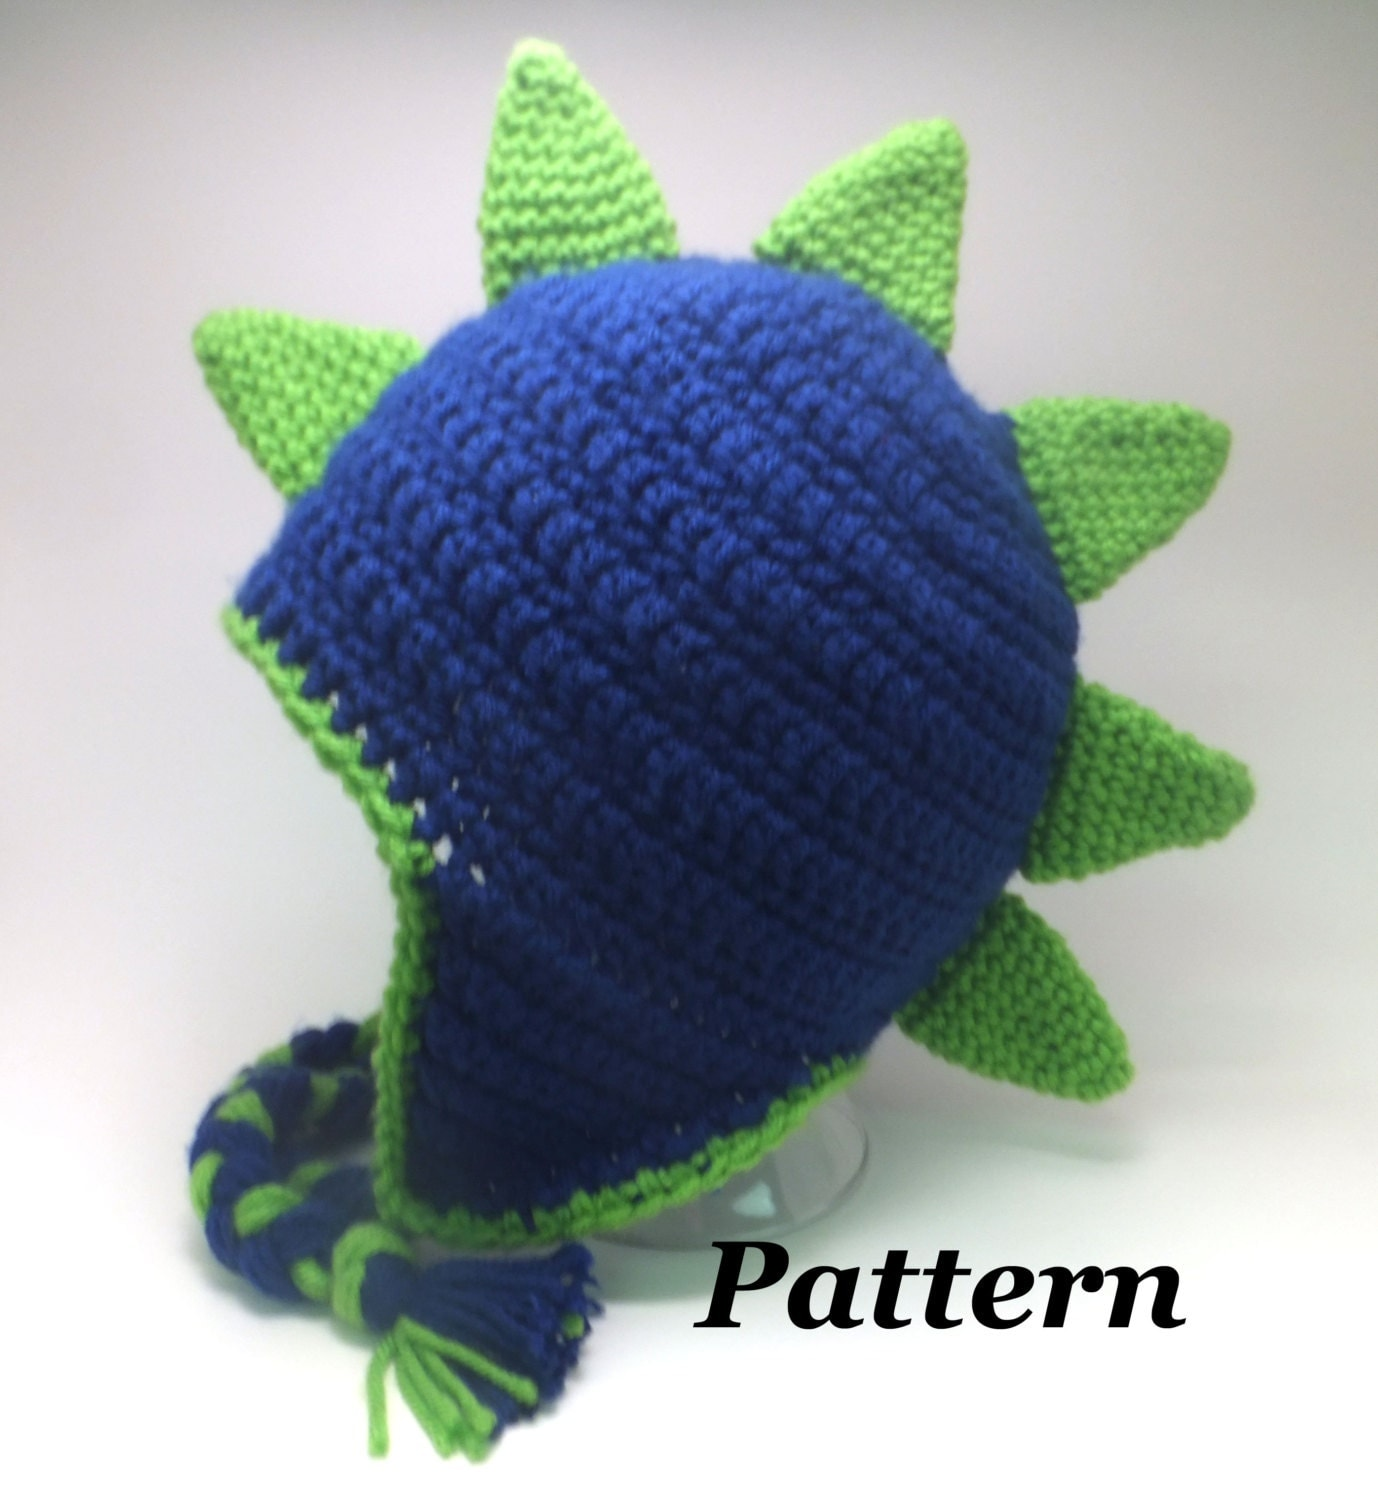 CROCHET PATTERN: Crochet Earflap Dinosaur or Dragon Hat